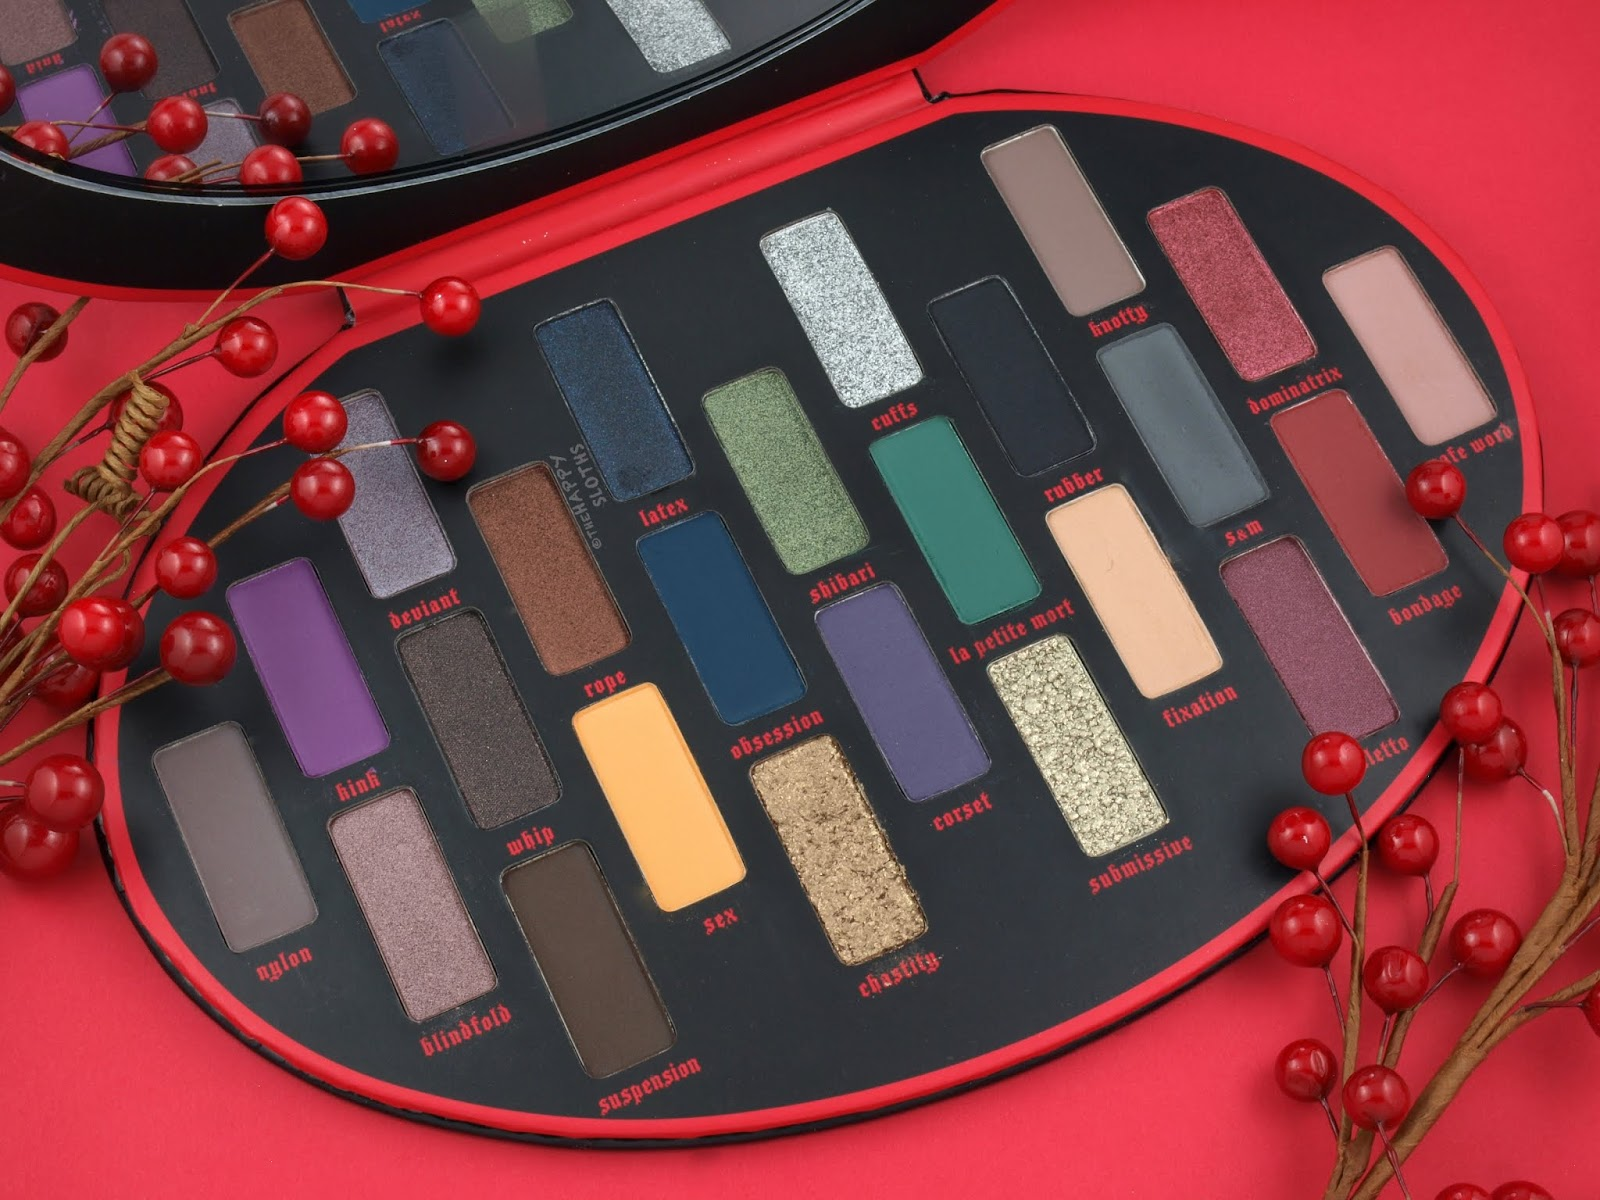 Kat Von D | Holiday 2018 Fetish Eyeshadow Palette: Review and Swatches